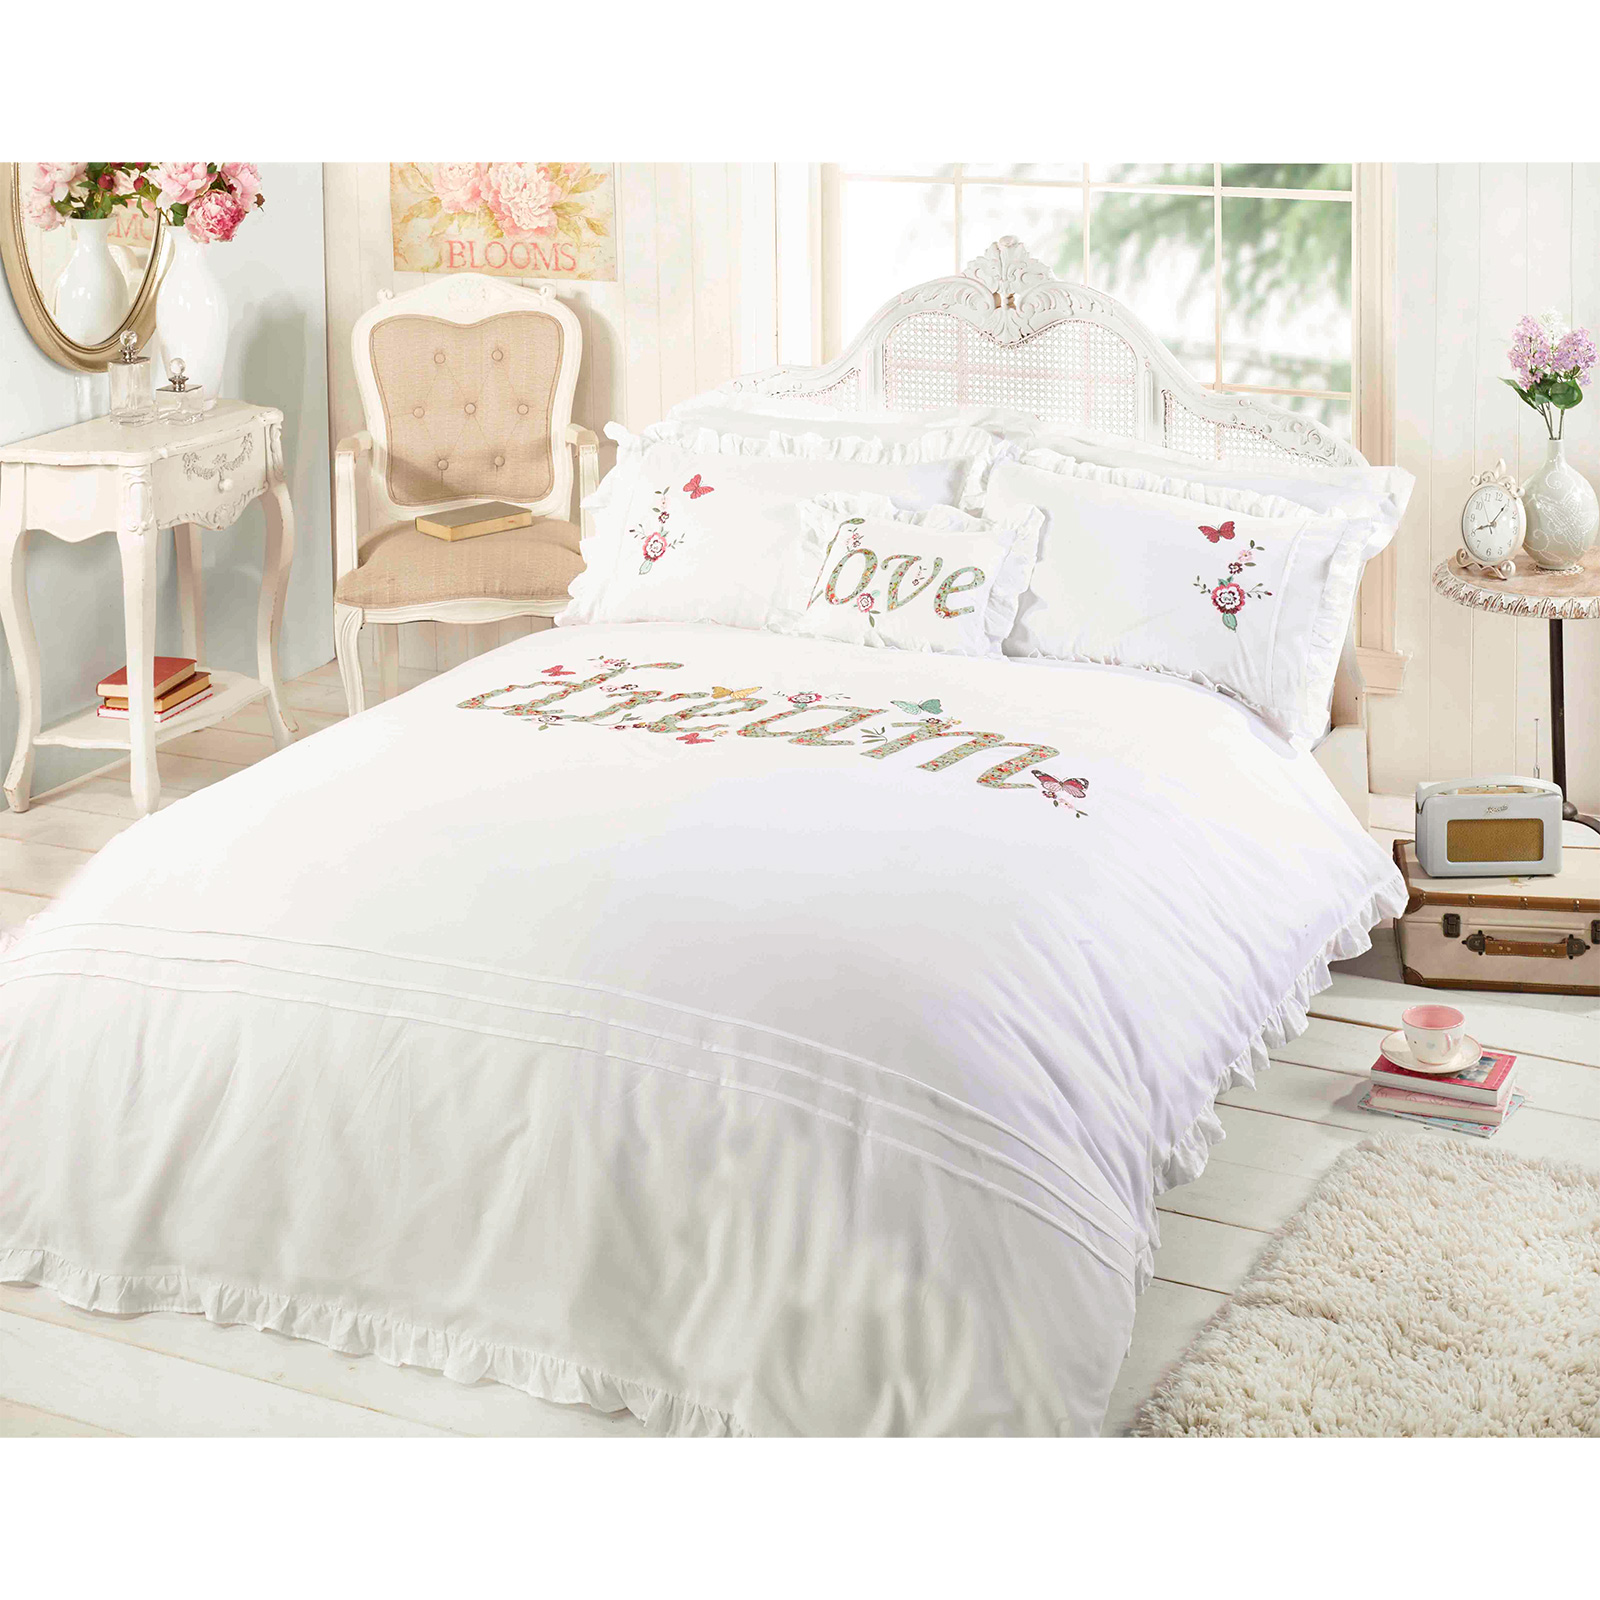 Bettwäsche Shabby Chic Shabby Chic Duvet Cover Luxury Embroidered Applique